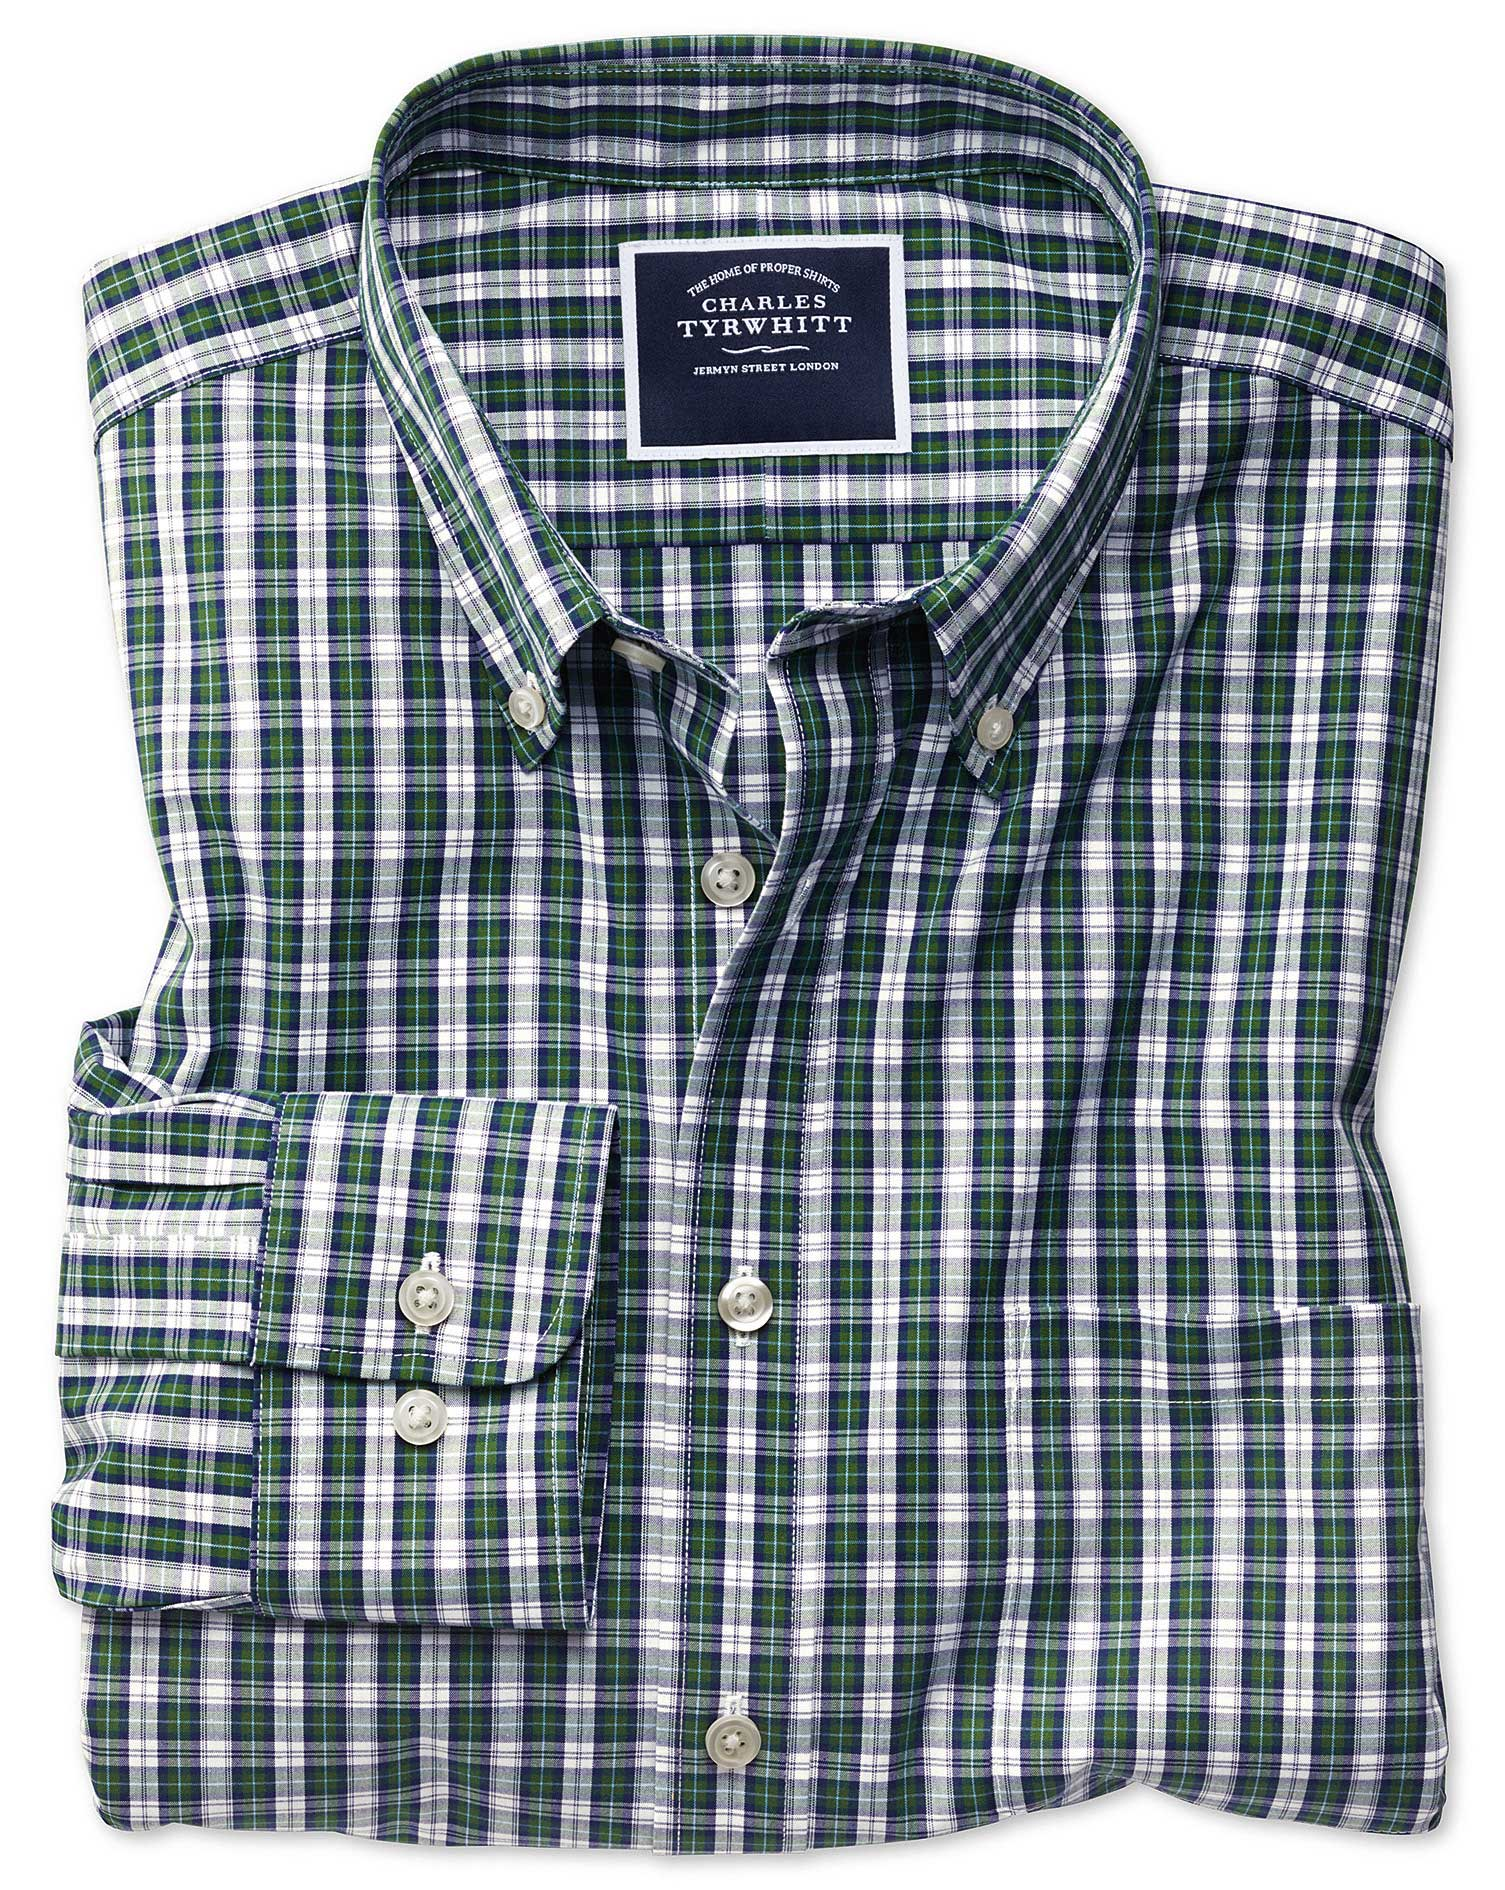 Slim Fit Non-Iron Green and Navy Tartan Check Cotton Shirt Single Cuff Size Small by Charles Tyrwhit